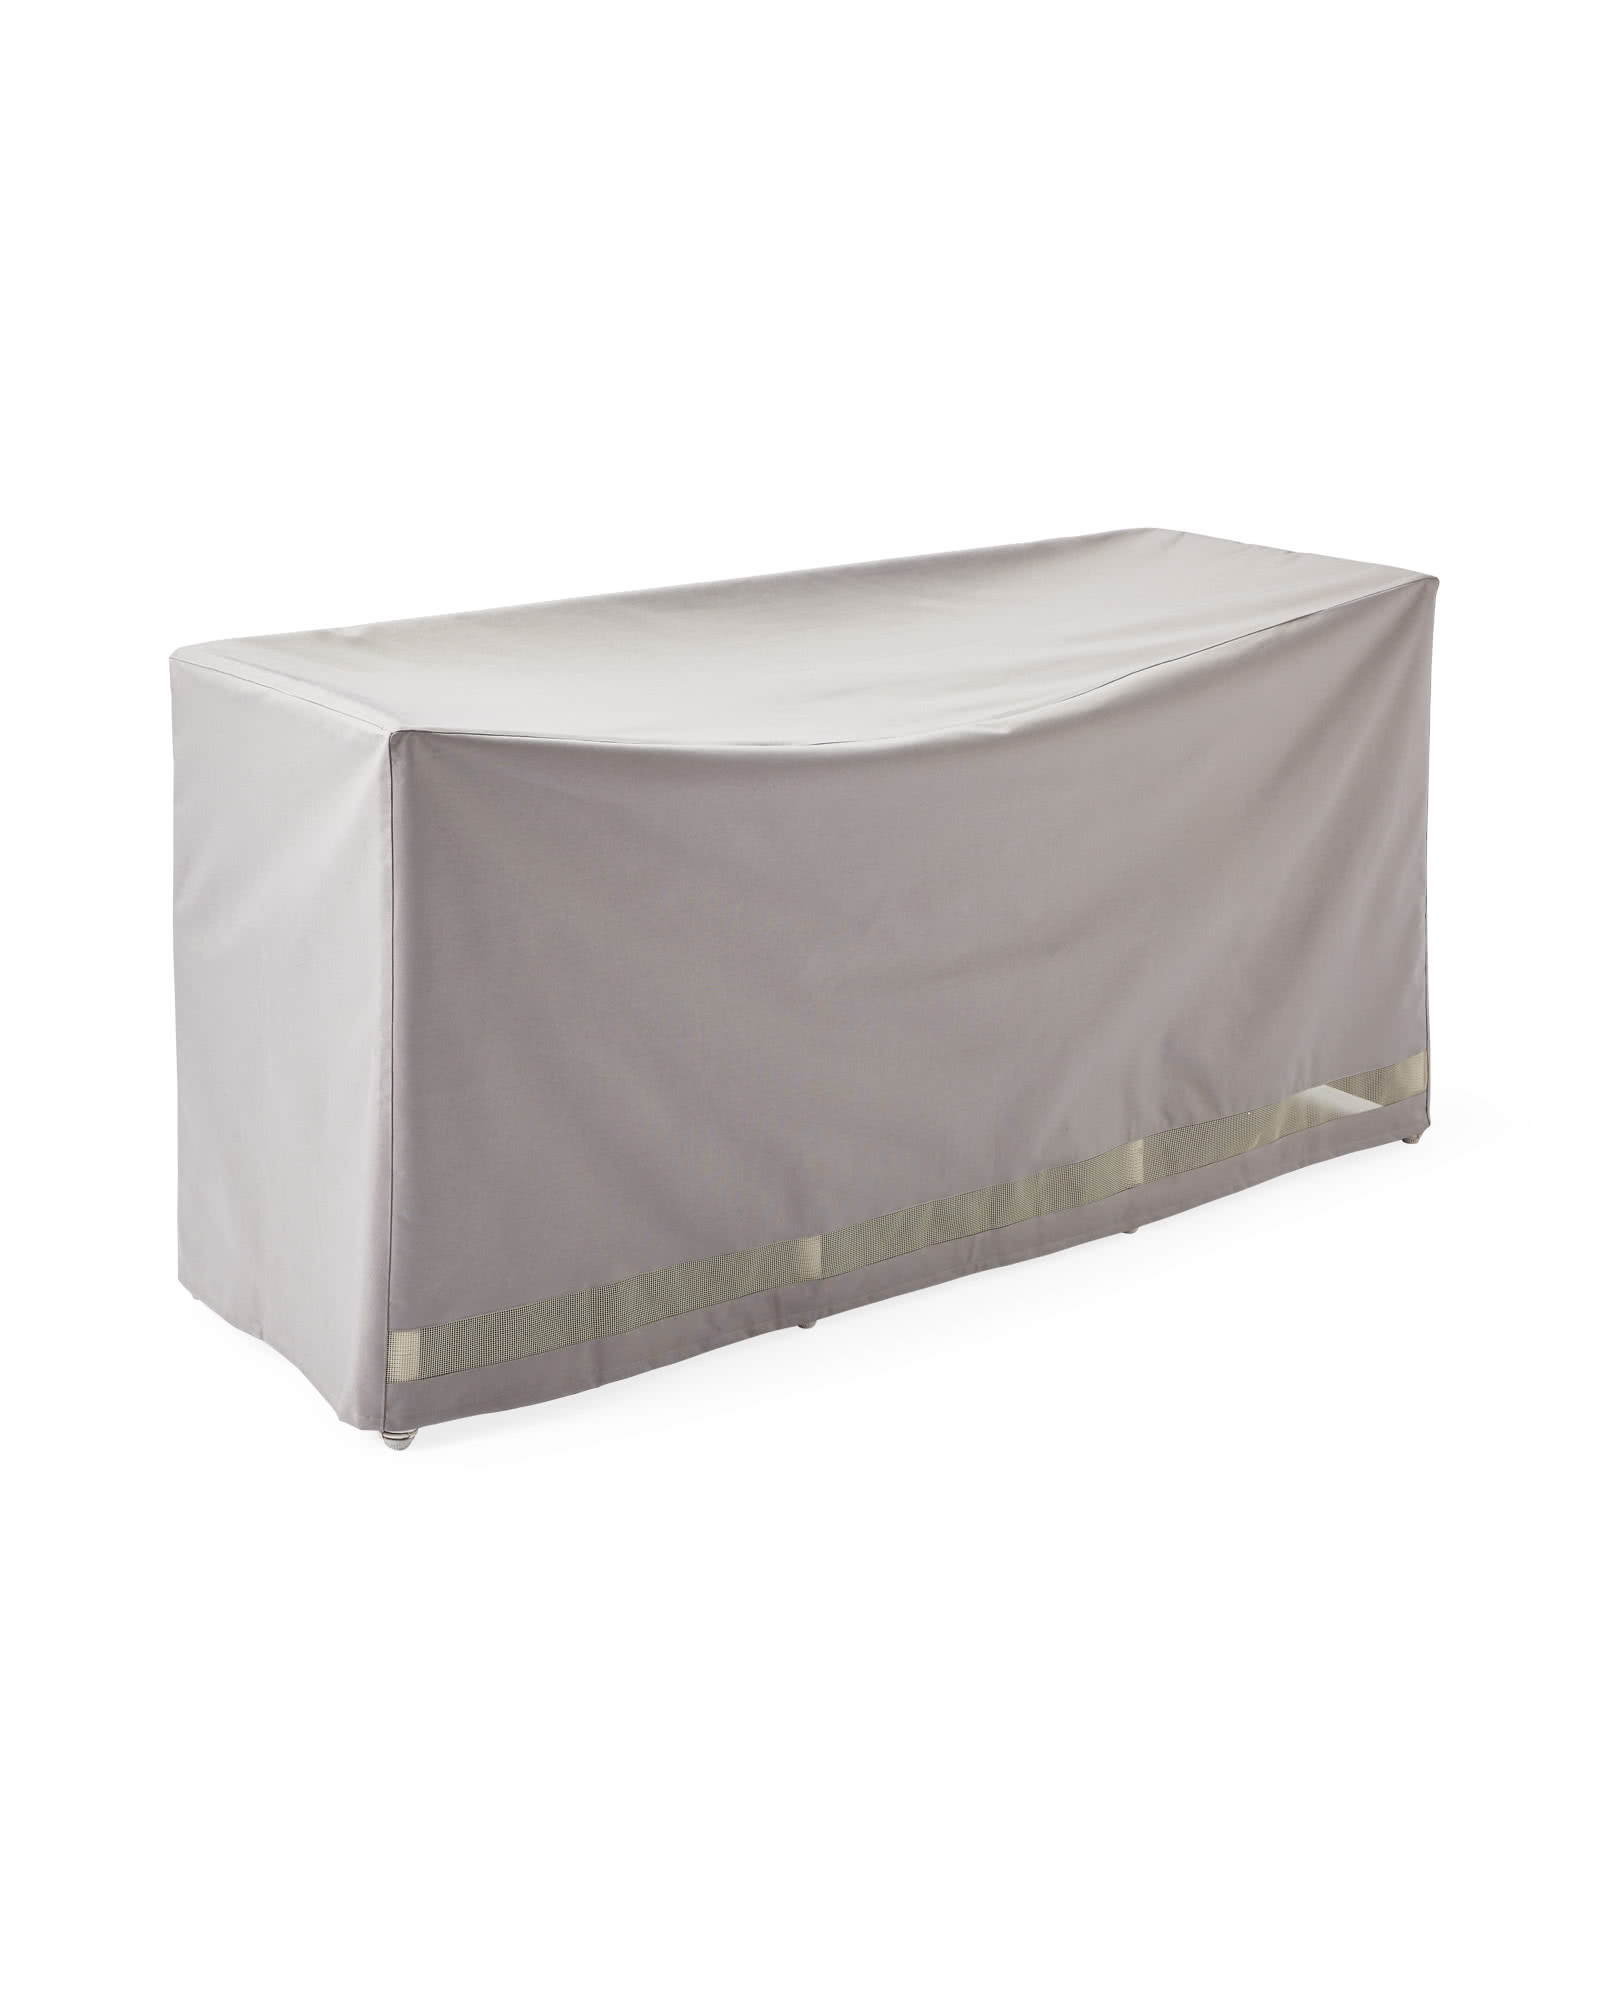 Protective Cover - Pacifica Bench,